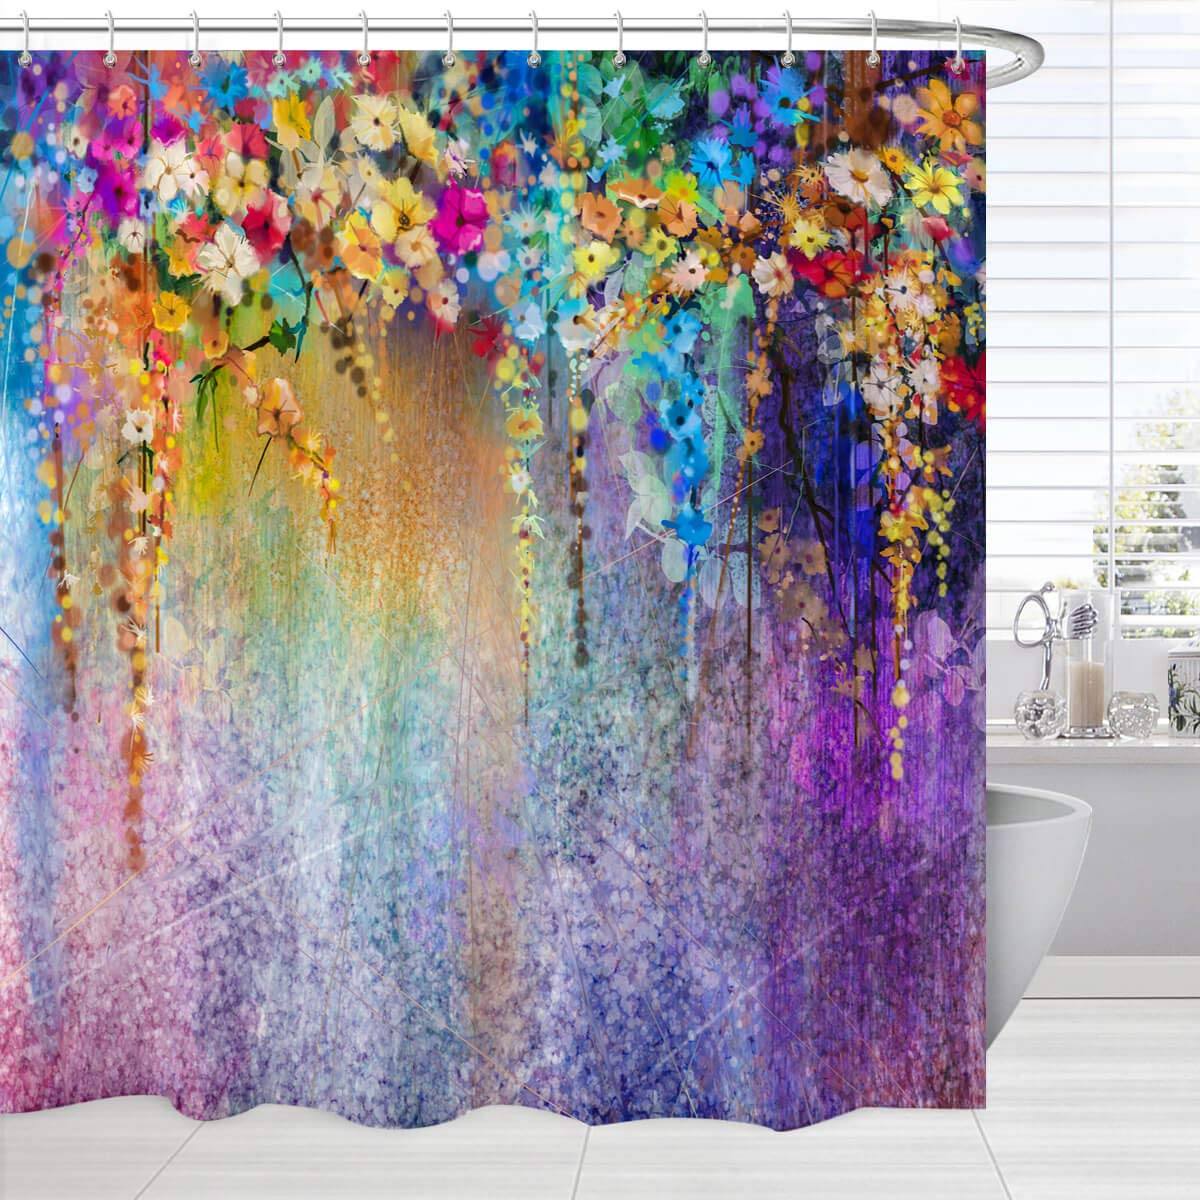 BARTORI Home Decorative Shower Curtain with Free Hooks Snow Scenery in The Forest with The Snowflake White and Clean Waterproof Polyester Fabric Bath Curtain with Size 71X71